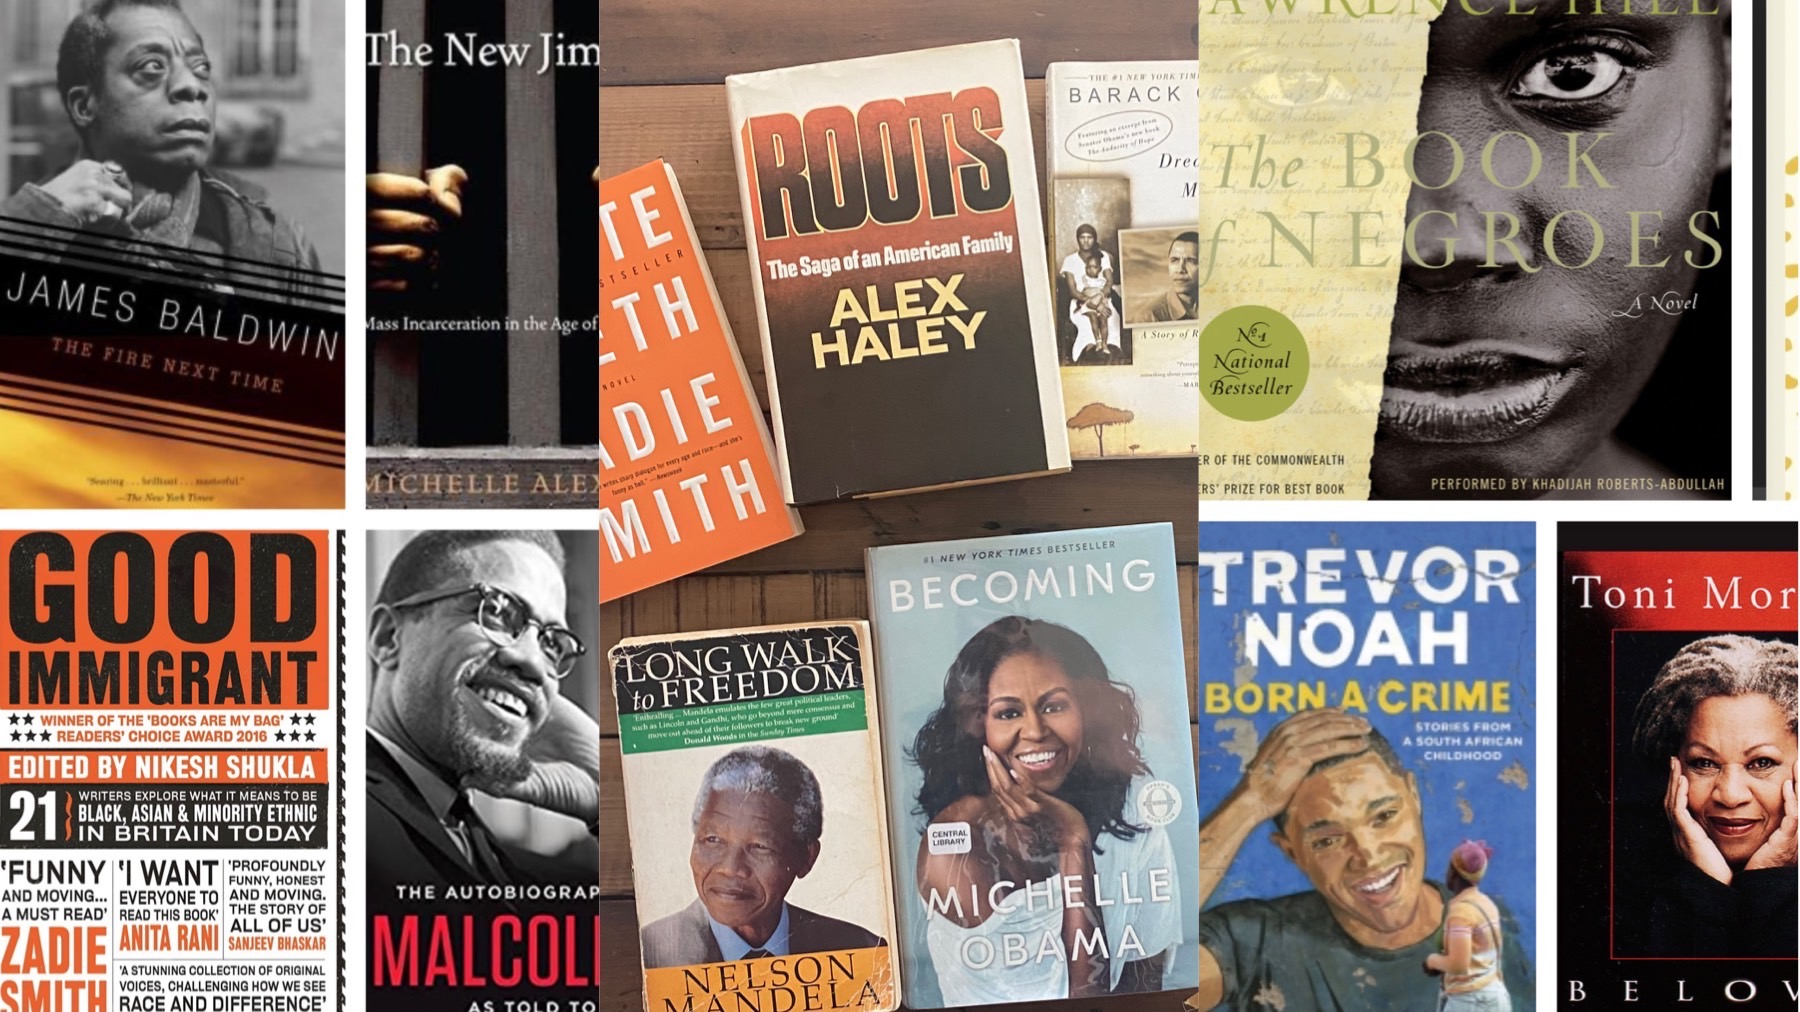 Books to read by Black authors #BlackLivesMatter